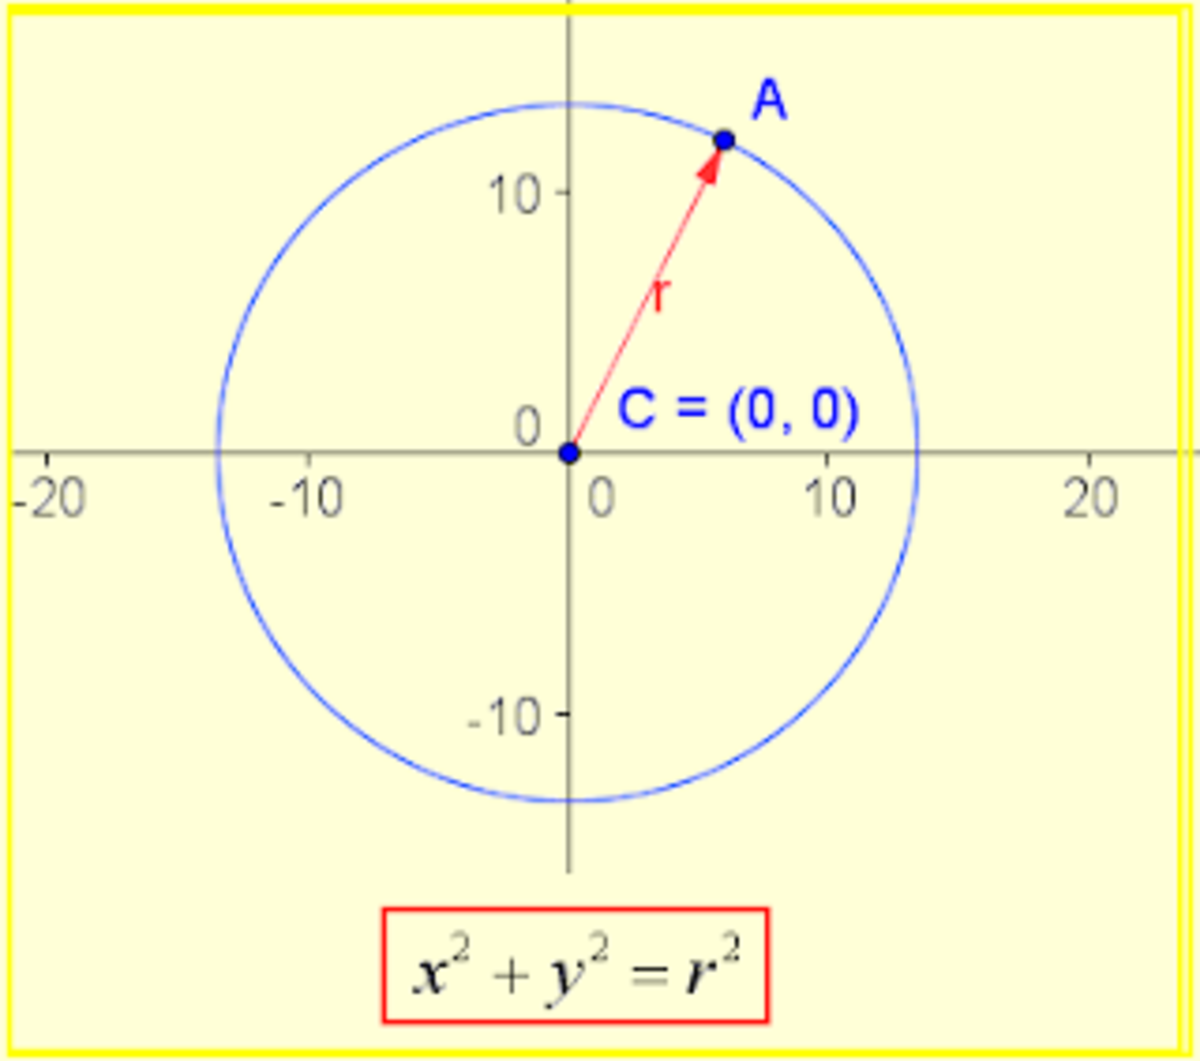 The circumference with center at the origin and radius equal to 1 is called goniometric circumference or unit circumference.